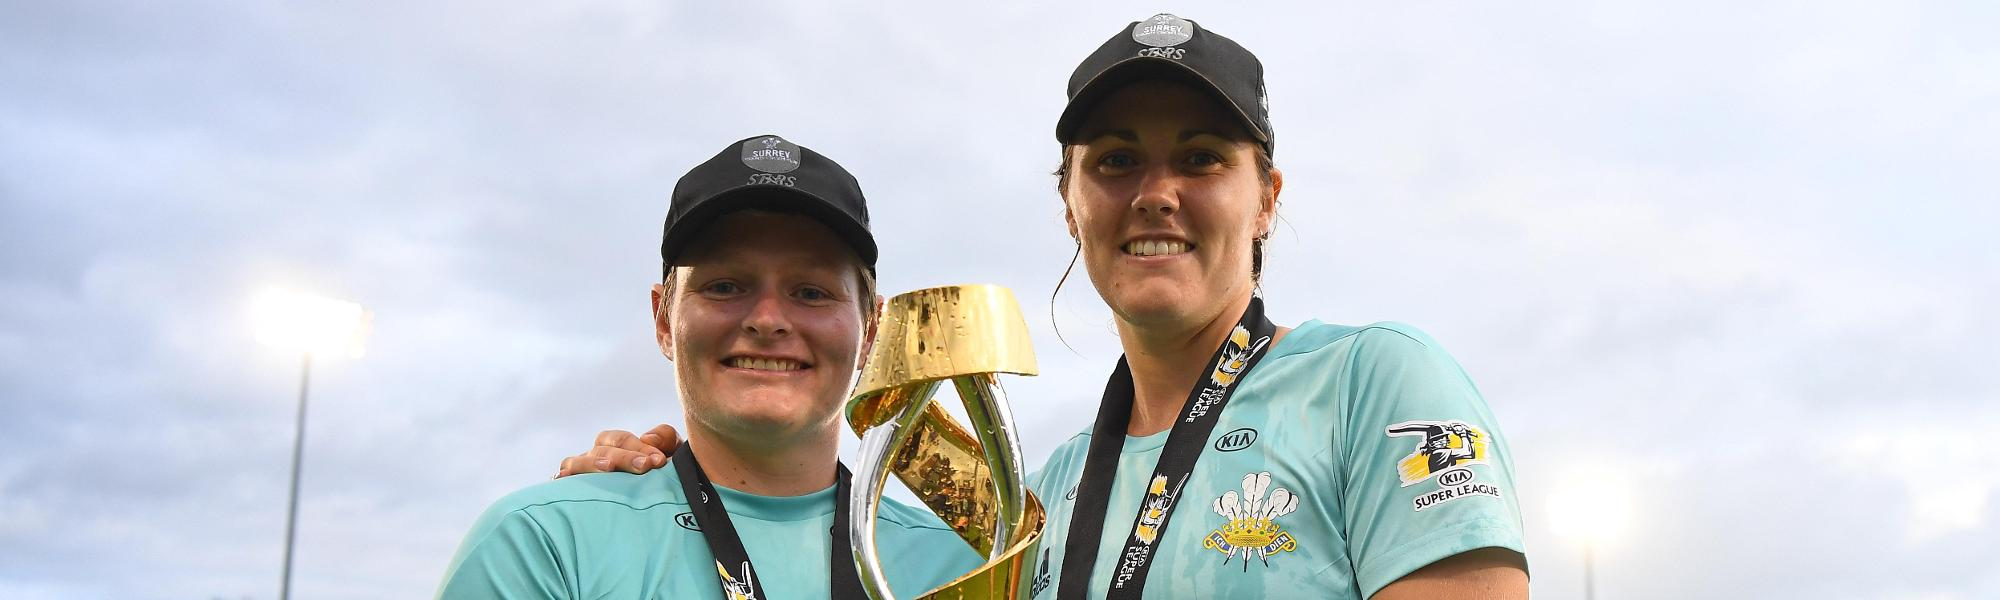 Lee and Sciver WCSL trophy